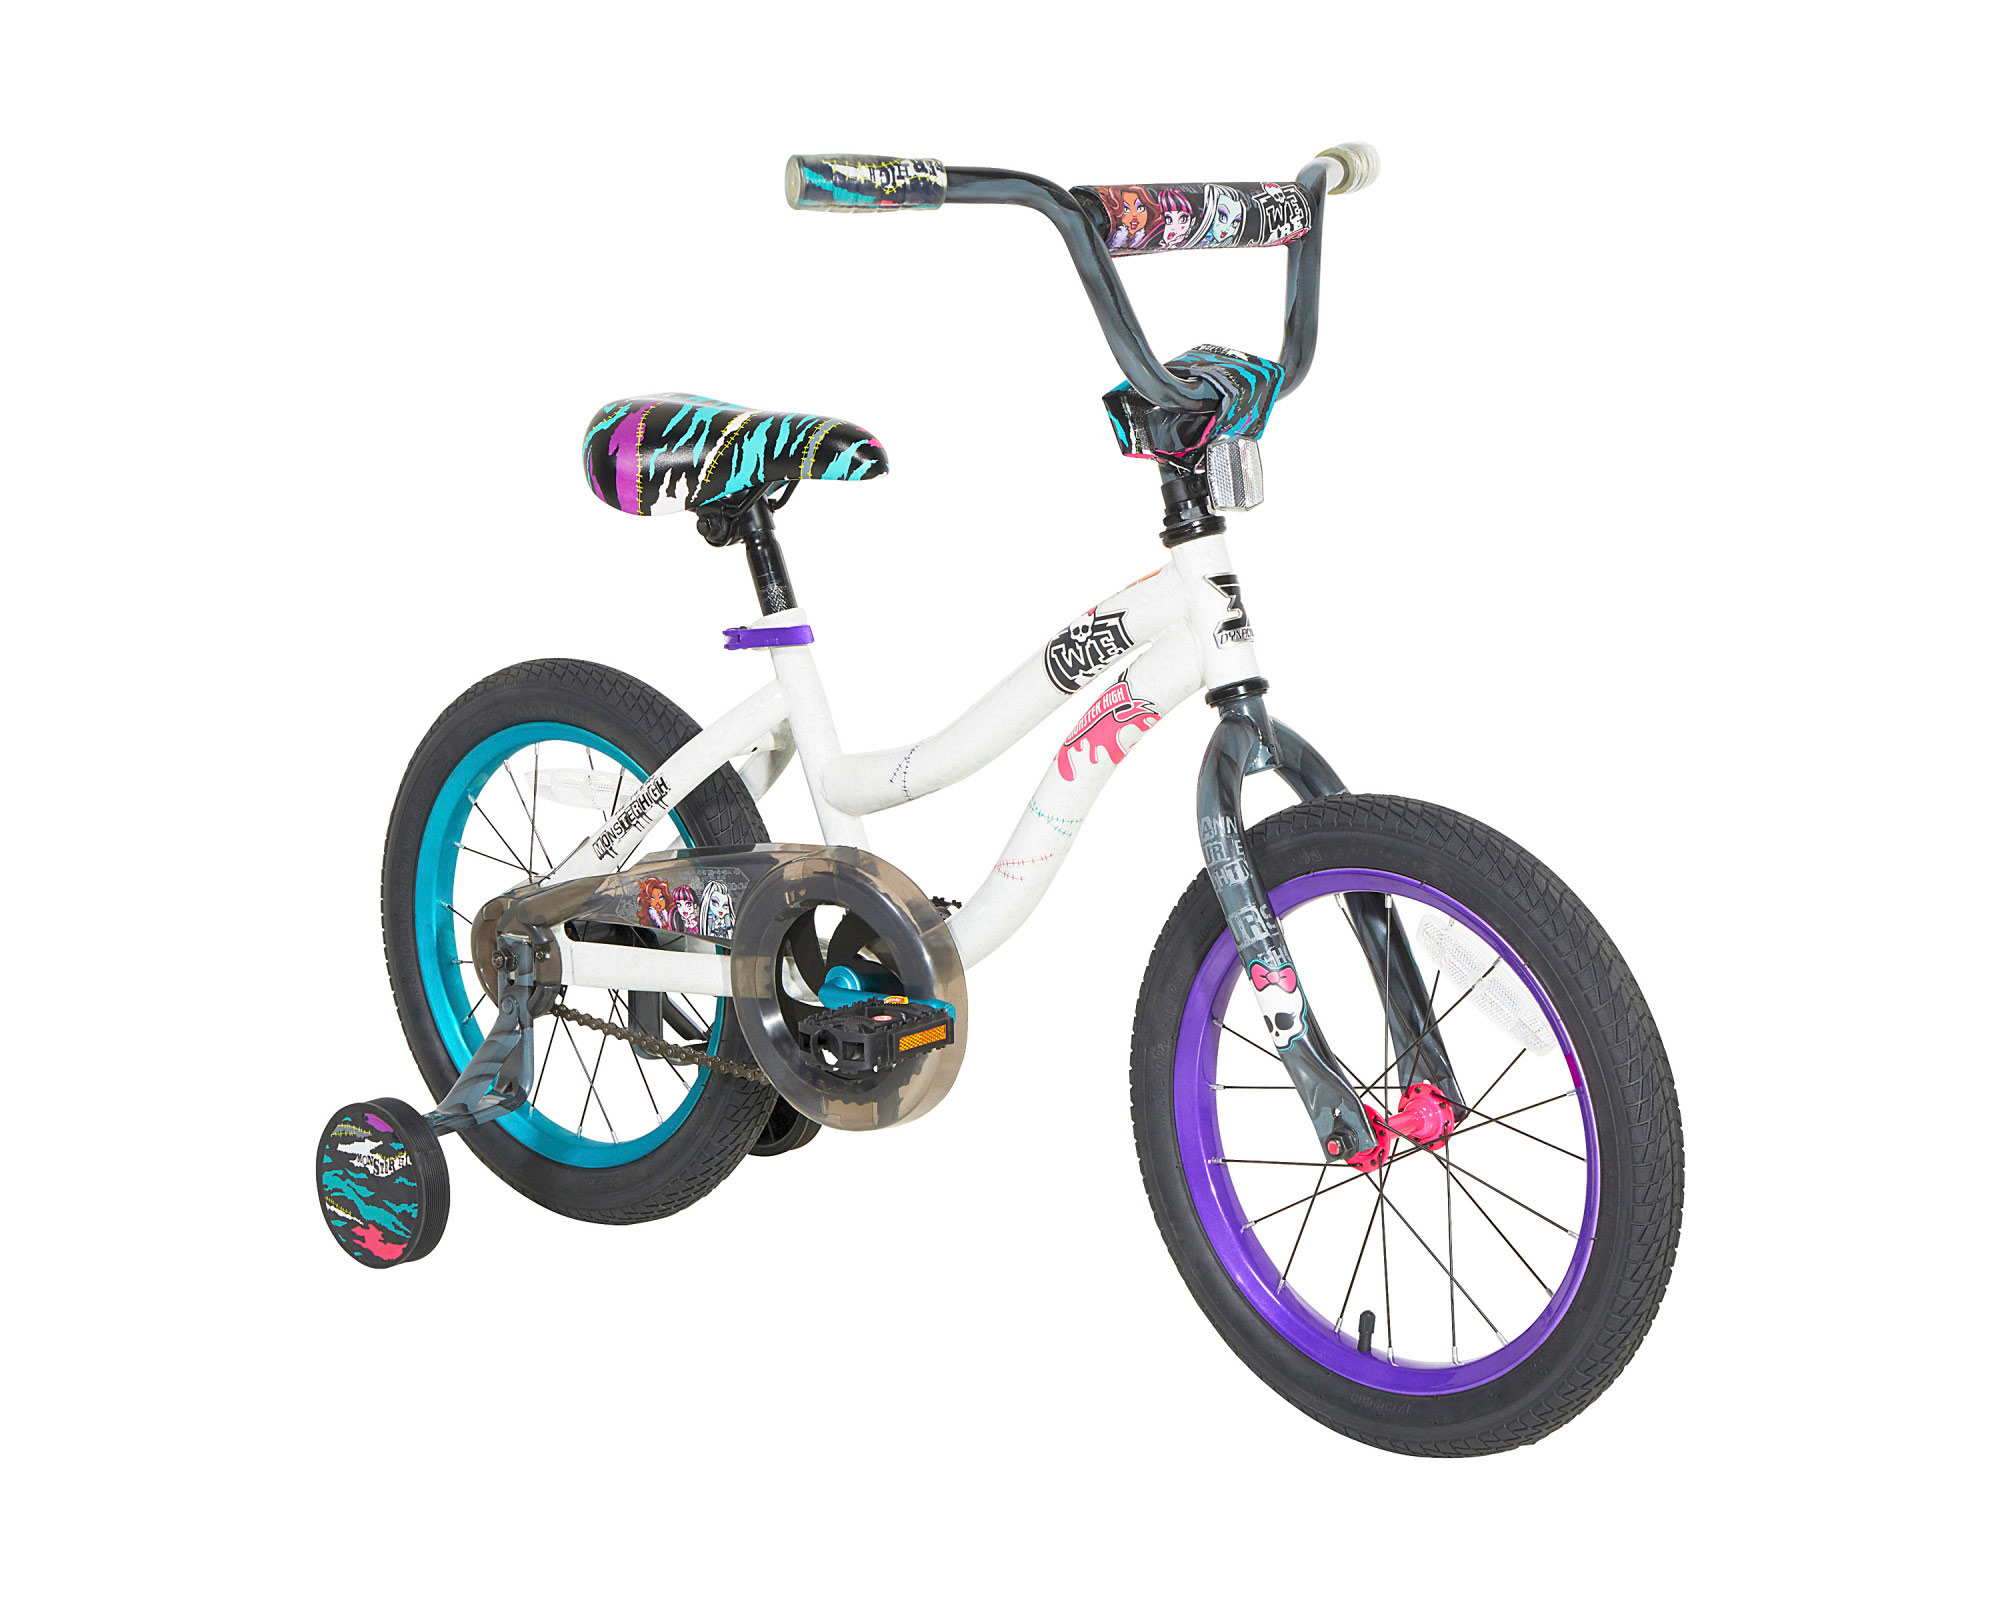 Product Manuals Dynacraft Bmx Bike Parts Diagram Monster High 16 White